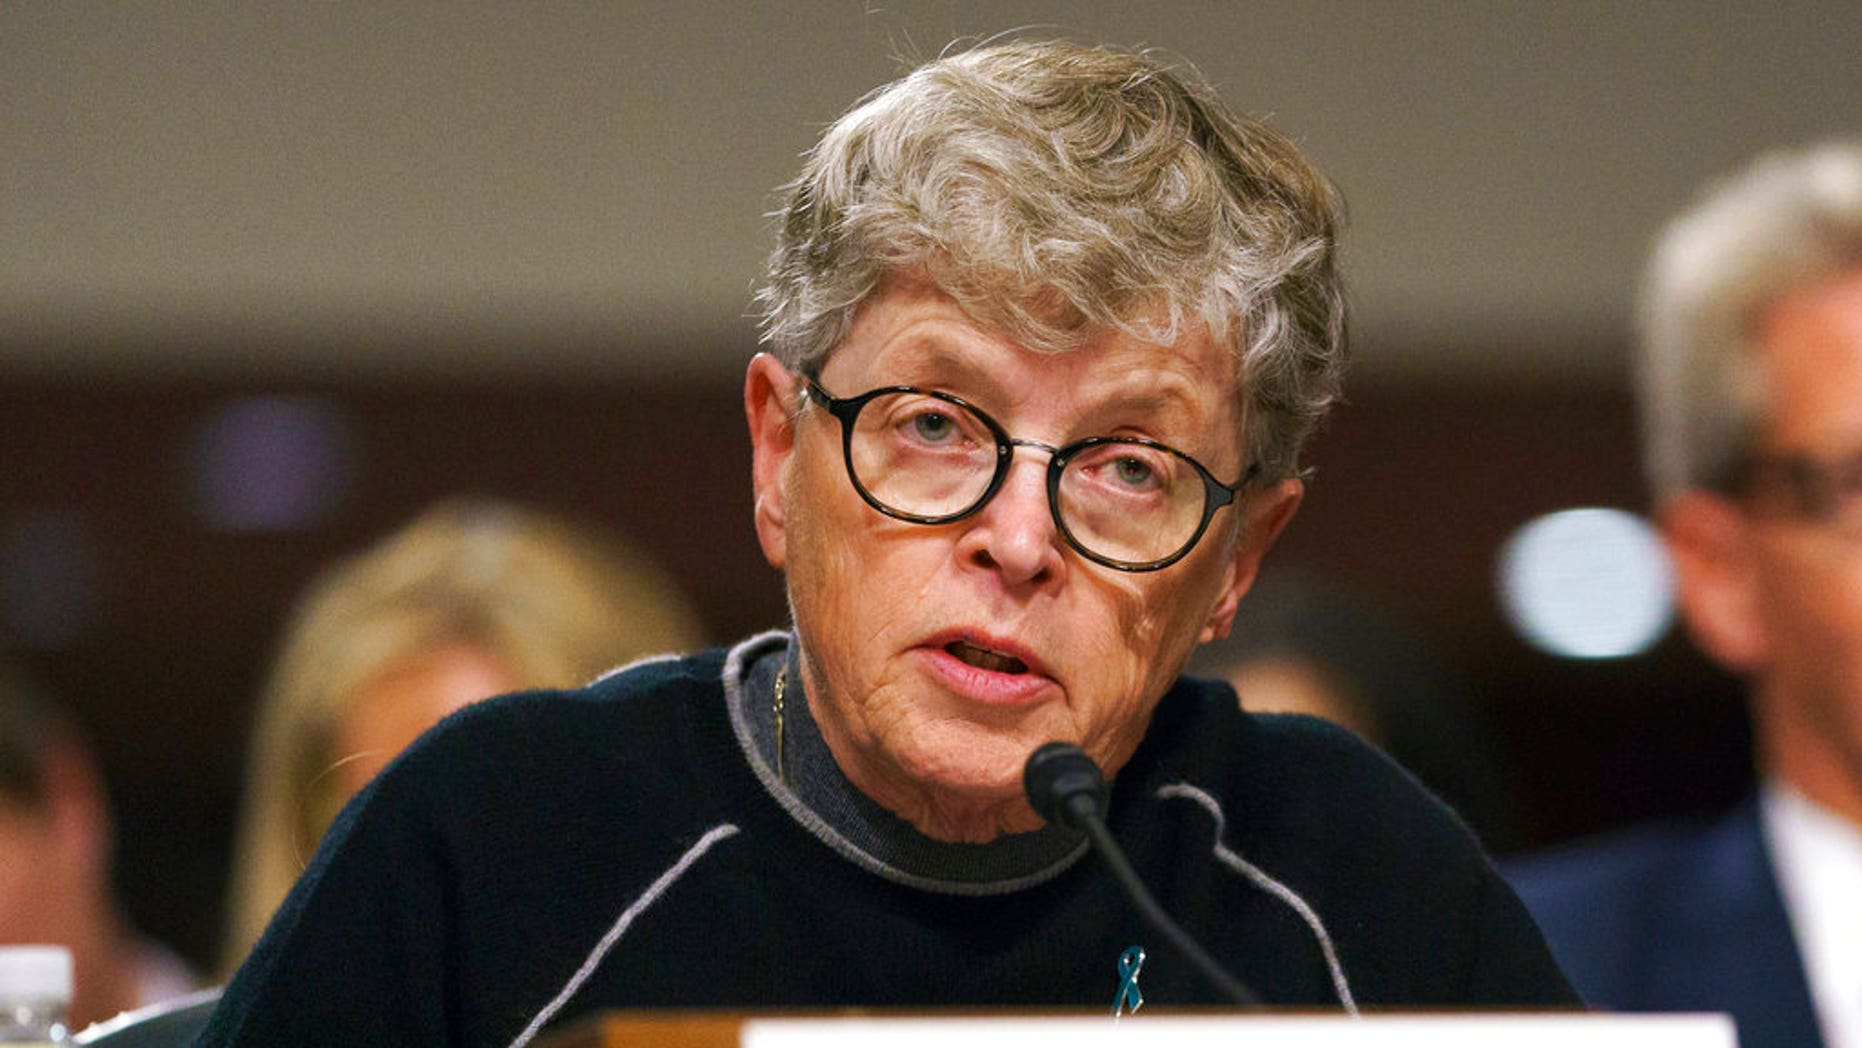 Lou Anna Simon was charged Tuesday with lying to police in connectiong to the Larry Nassar sexual abuse scandal.